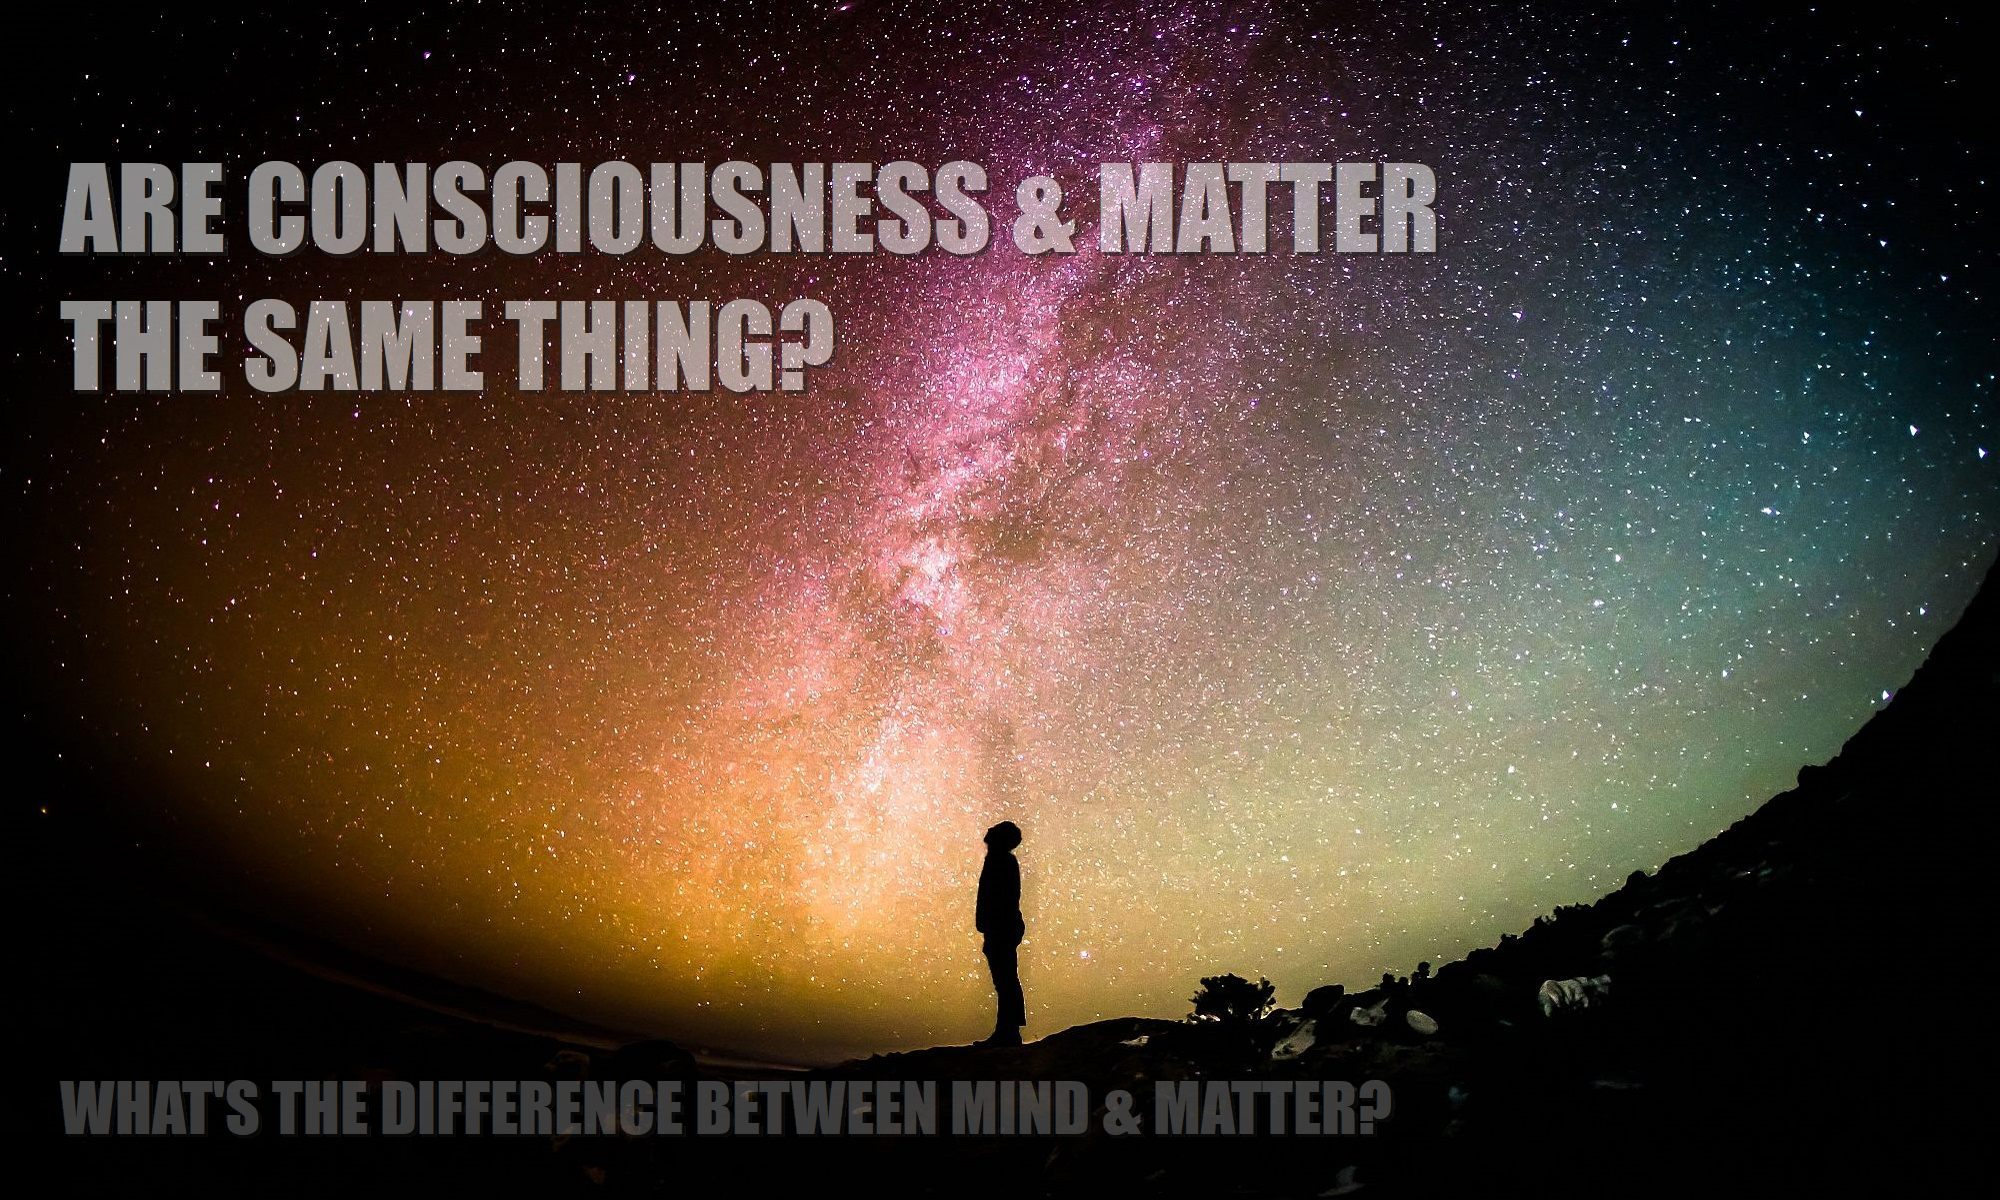 are-consciousness-matter-the-same-thing-1a-2000